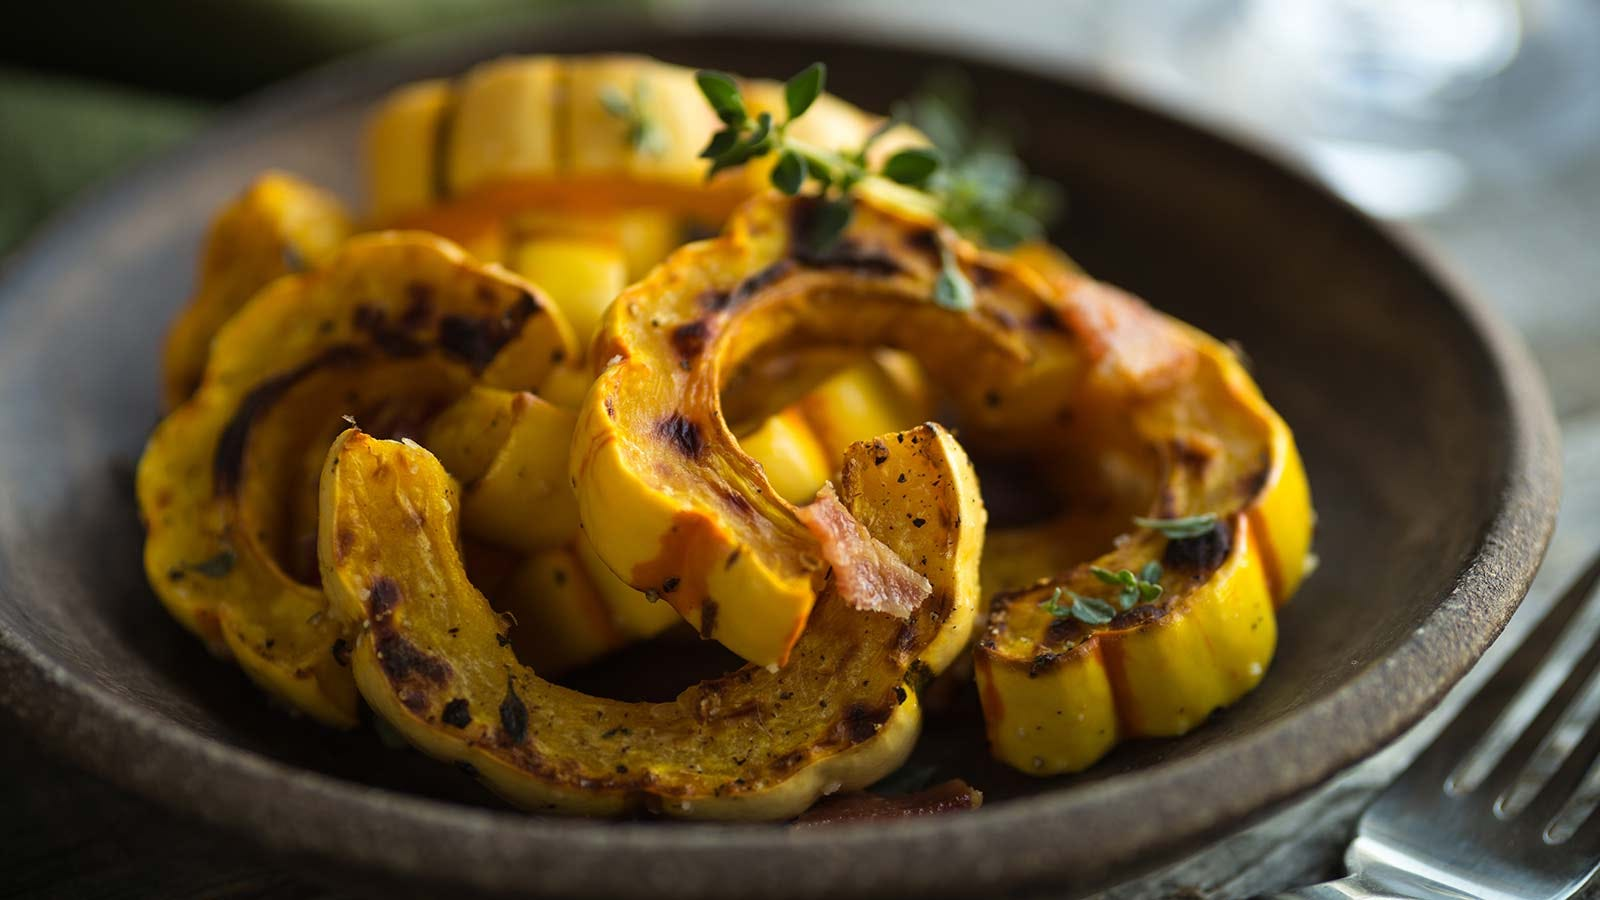 A plate loaded with slices of roasted delicata squash.